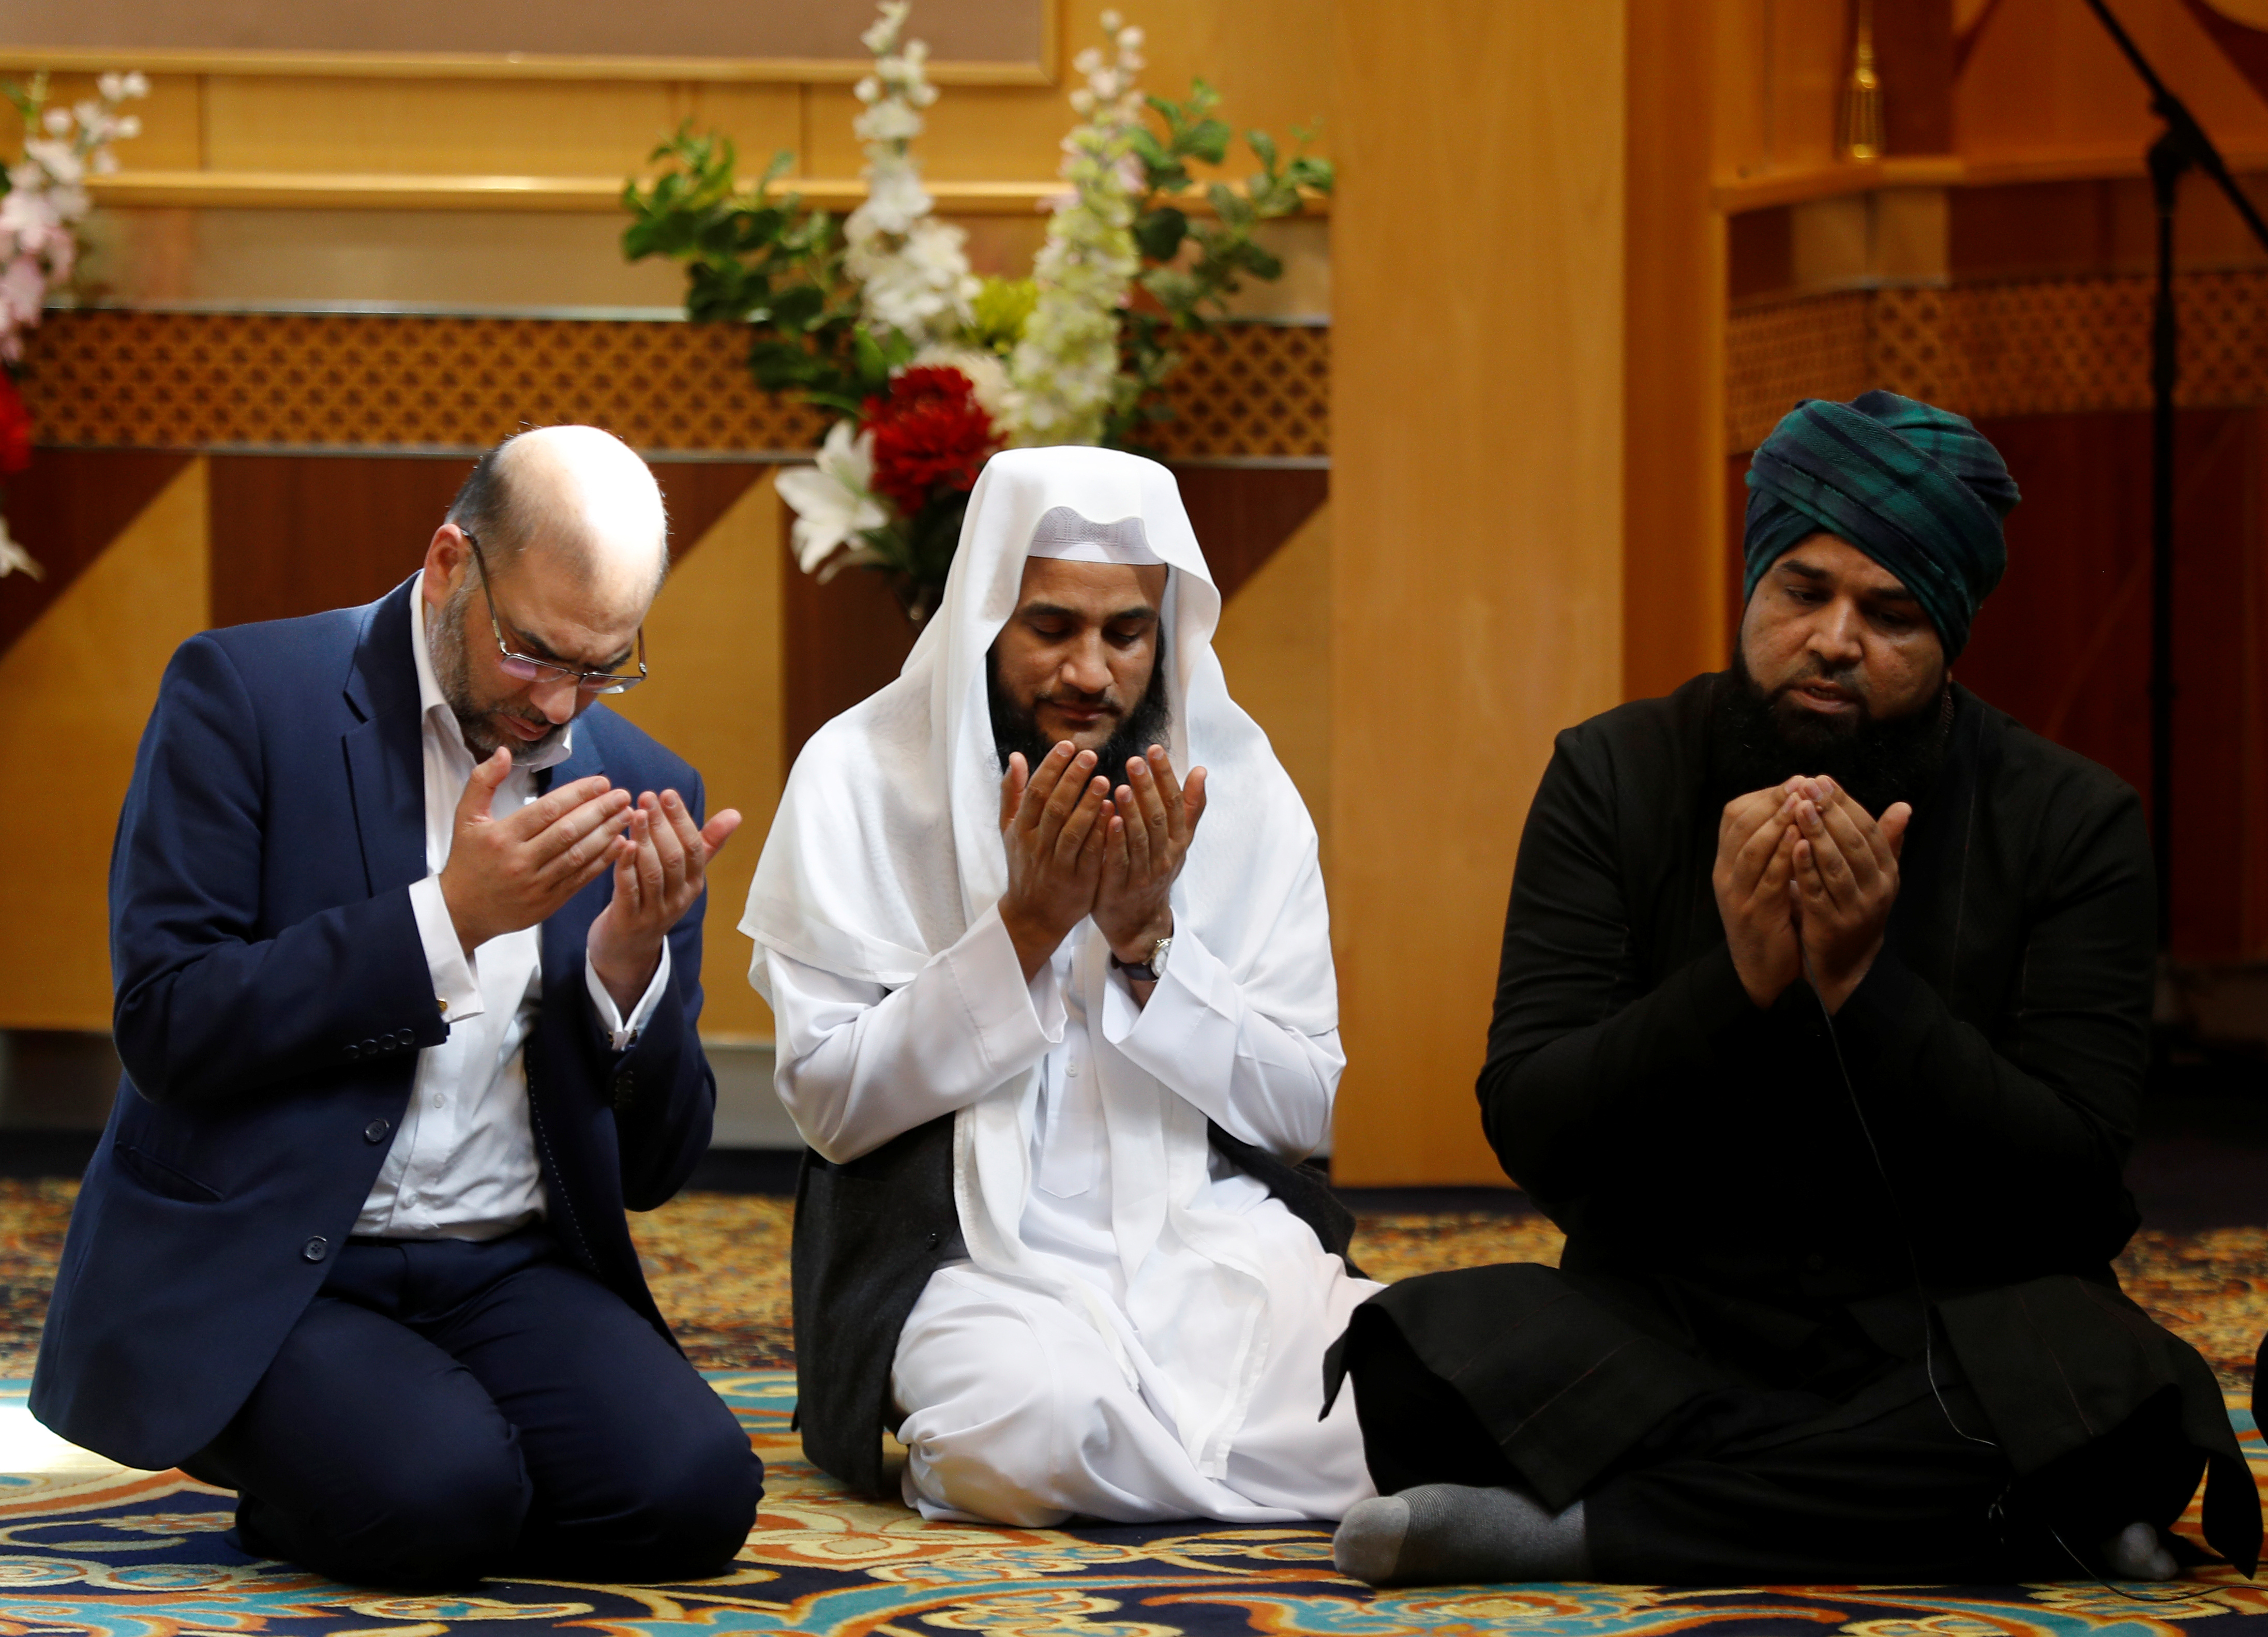 Muslim men pray for victims of the attack at Manchester Arena at a mosque in Manchester, May 23, 2017.